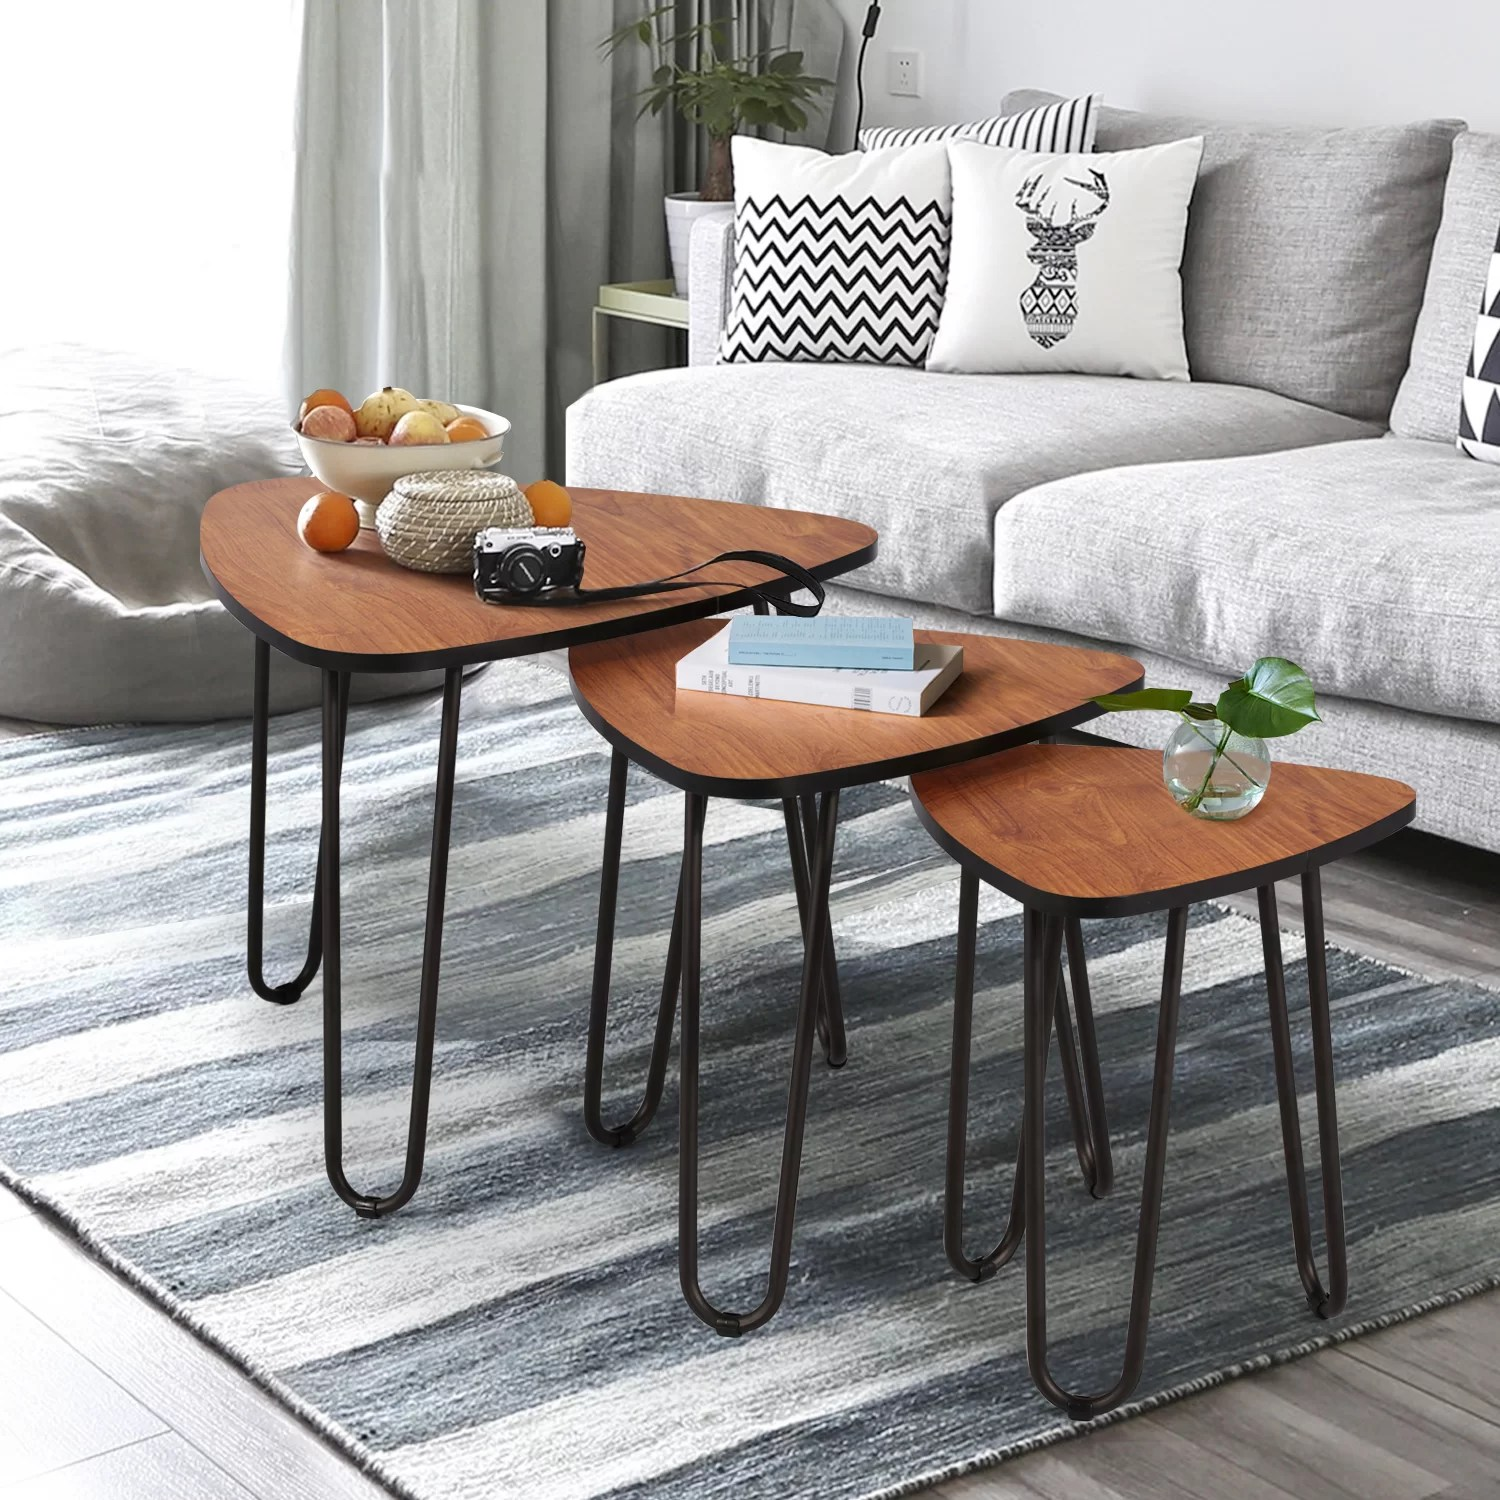 union rustic nesting coffee tables set of 3 end side tables modern furniture decor table sets sturdy and easy assembly accent furniture in home